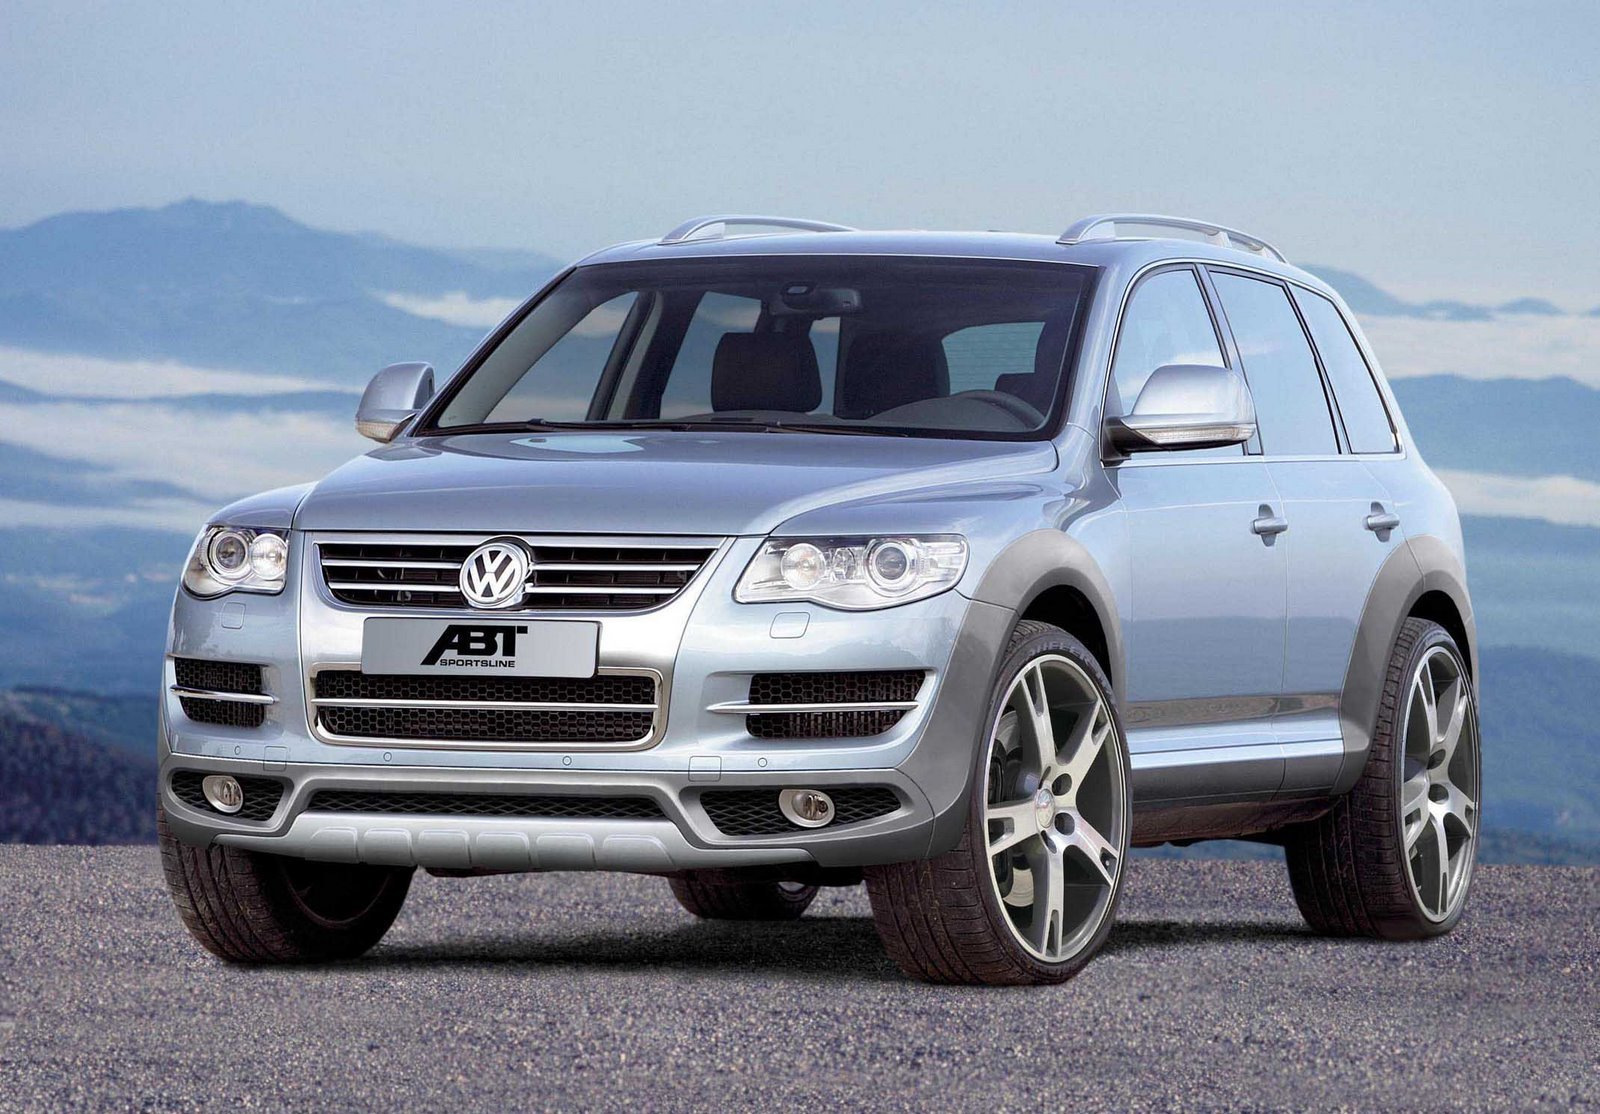 2008 abt volkswagen touareg review top speed. Black Bedroom Furniture Sets. Home Design Ideas